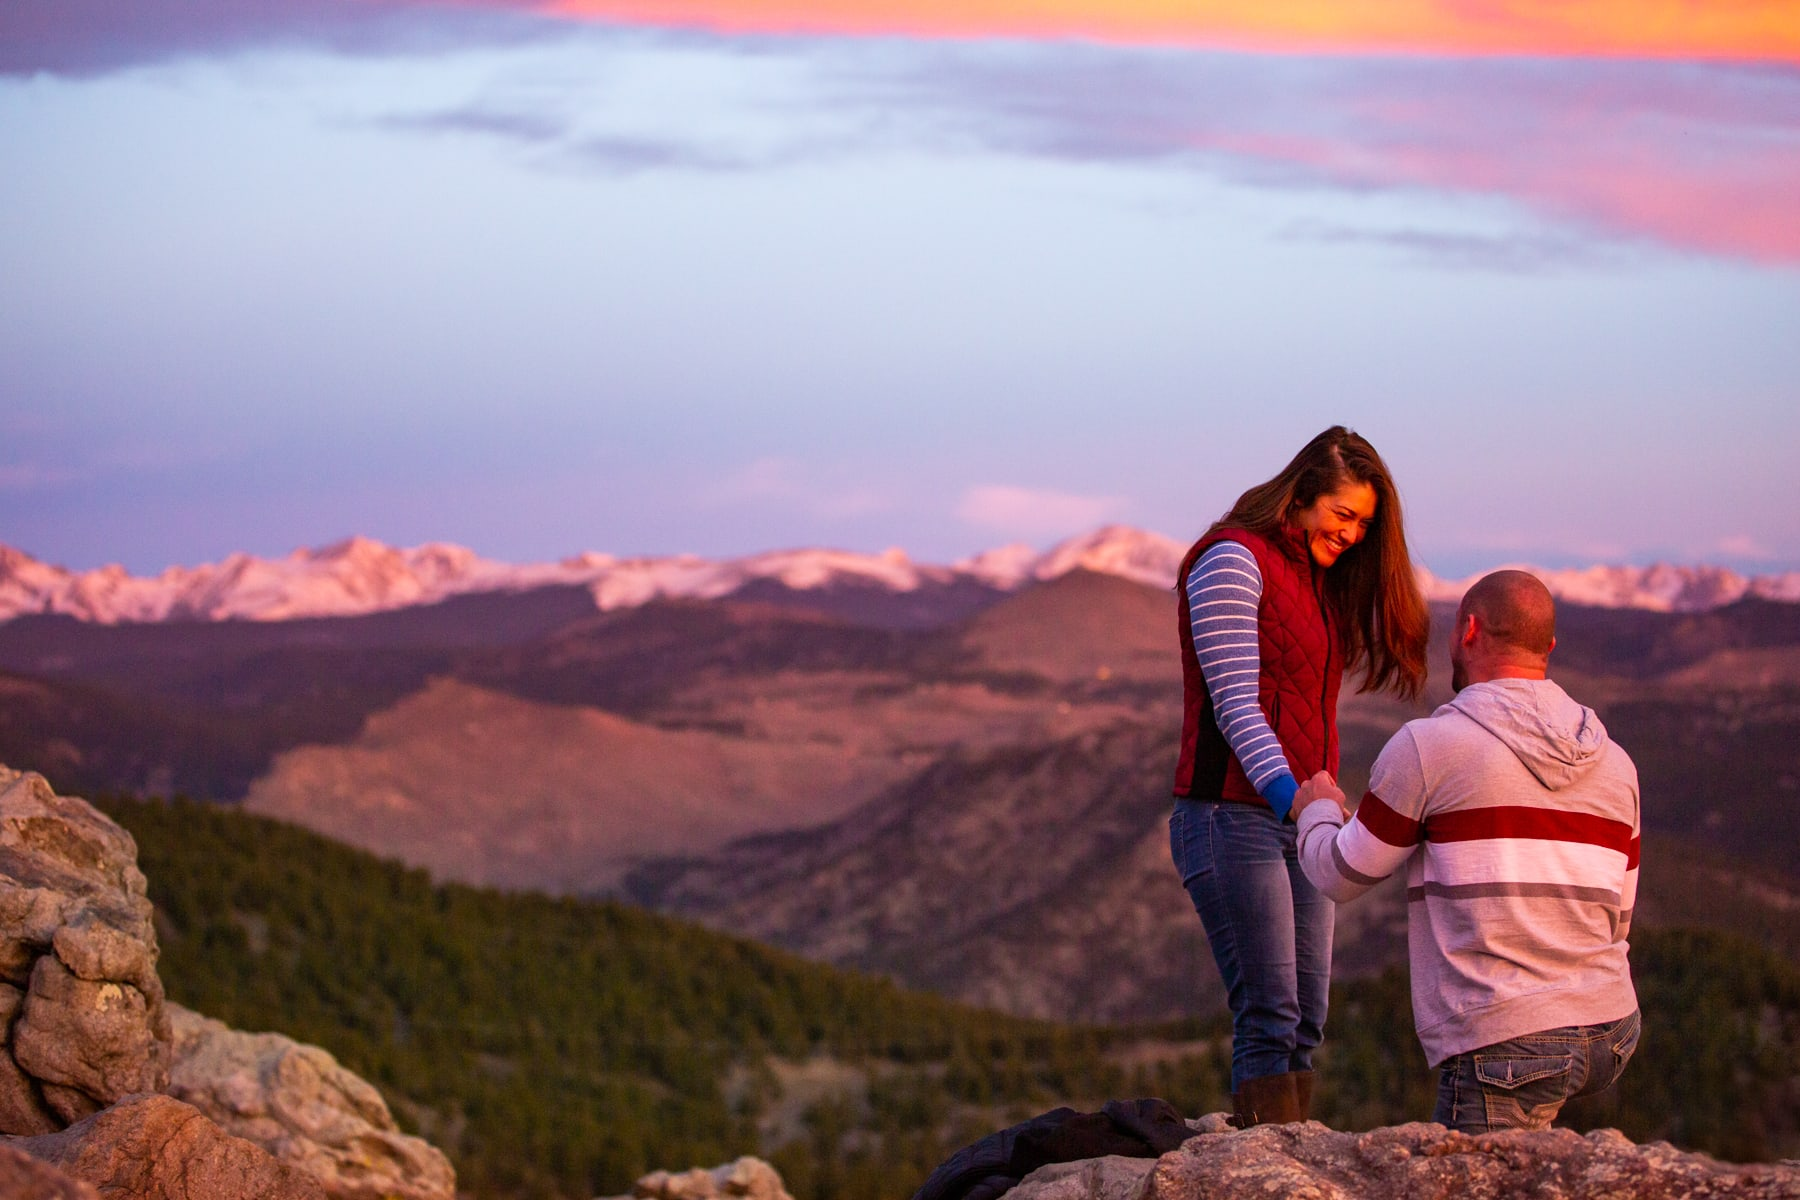 Colorado Mountain Proposal – Sunrise Proposal At Lost Gulch